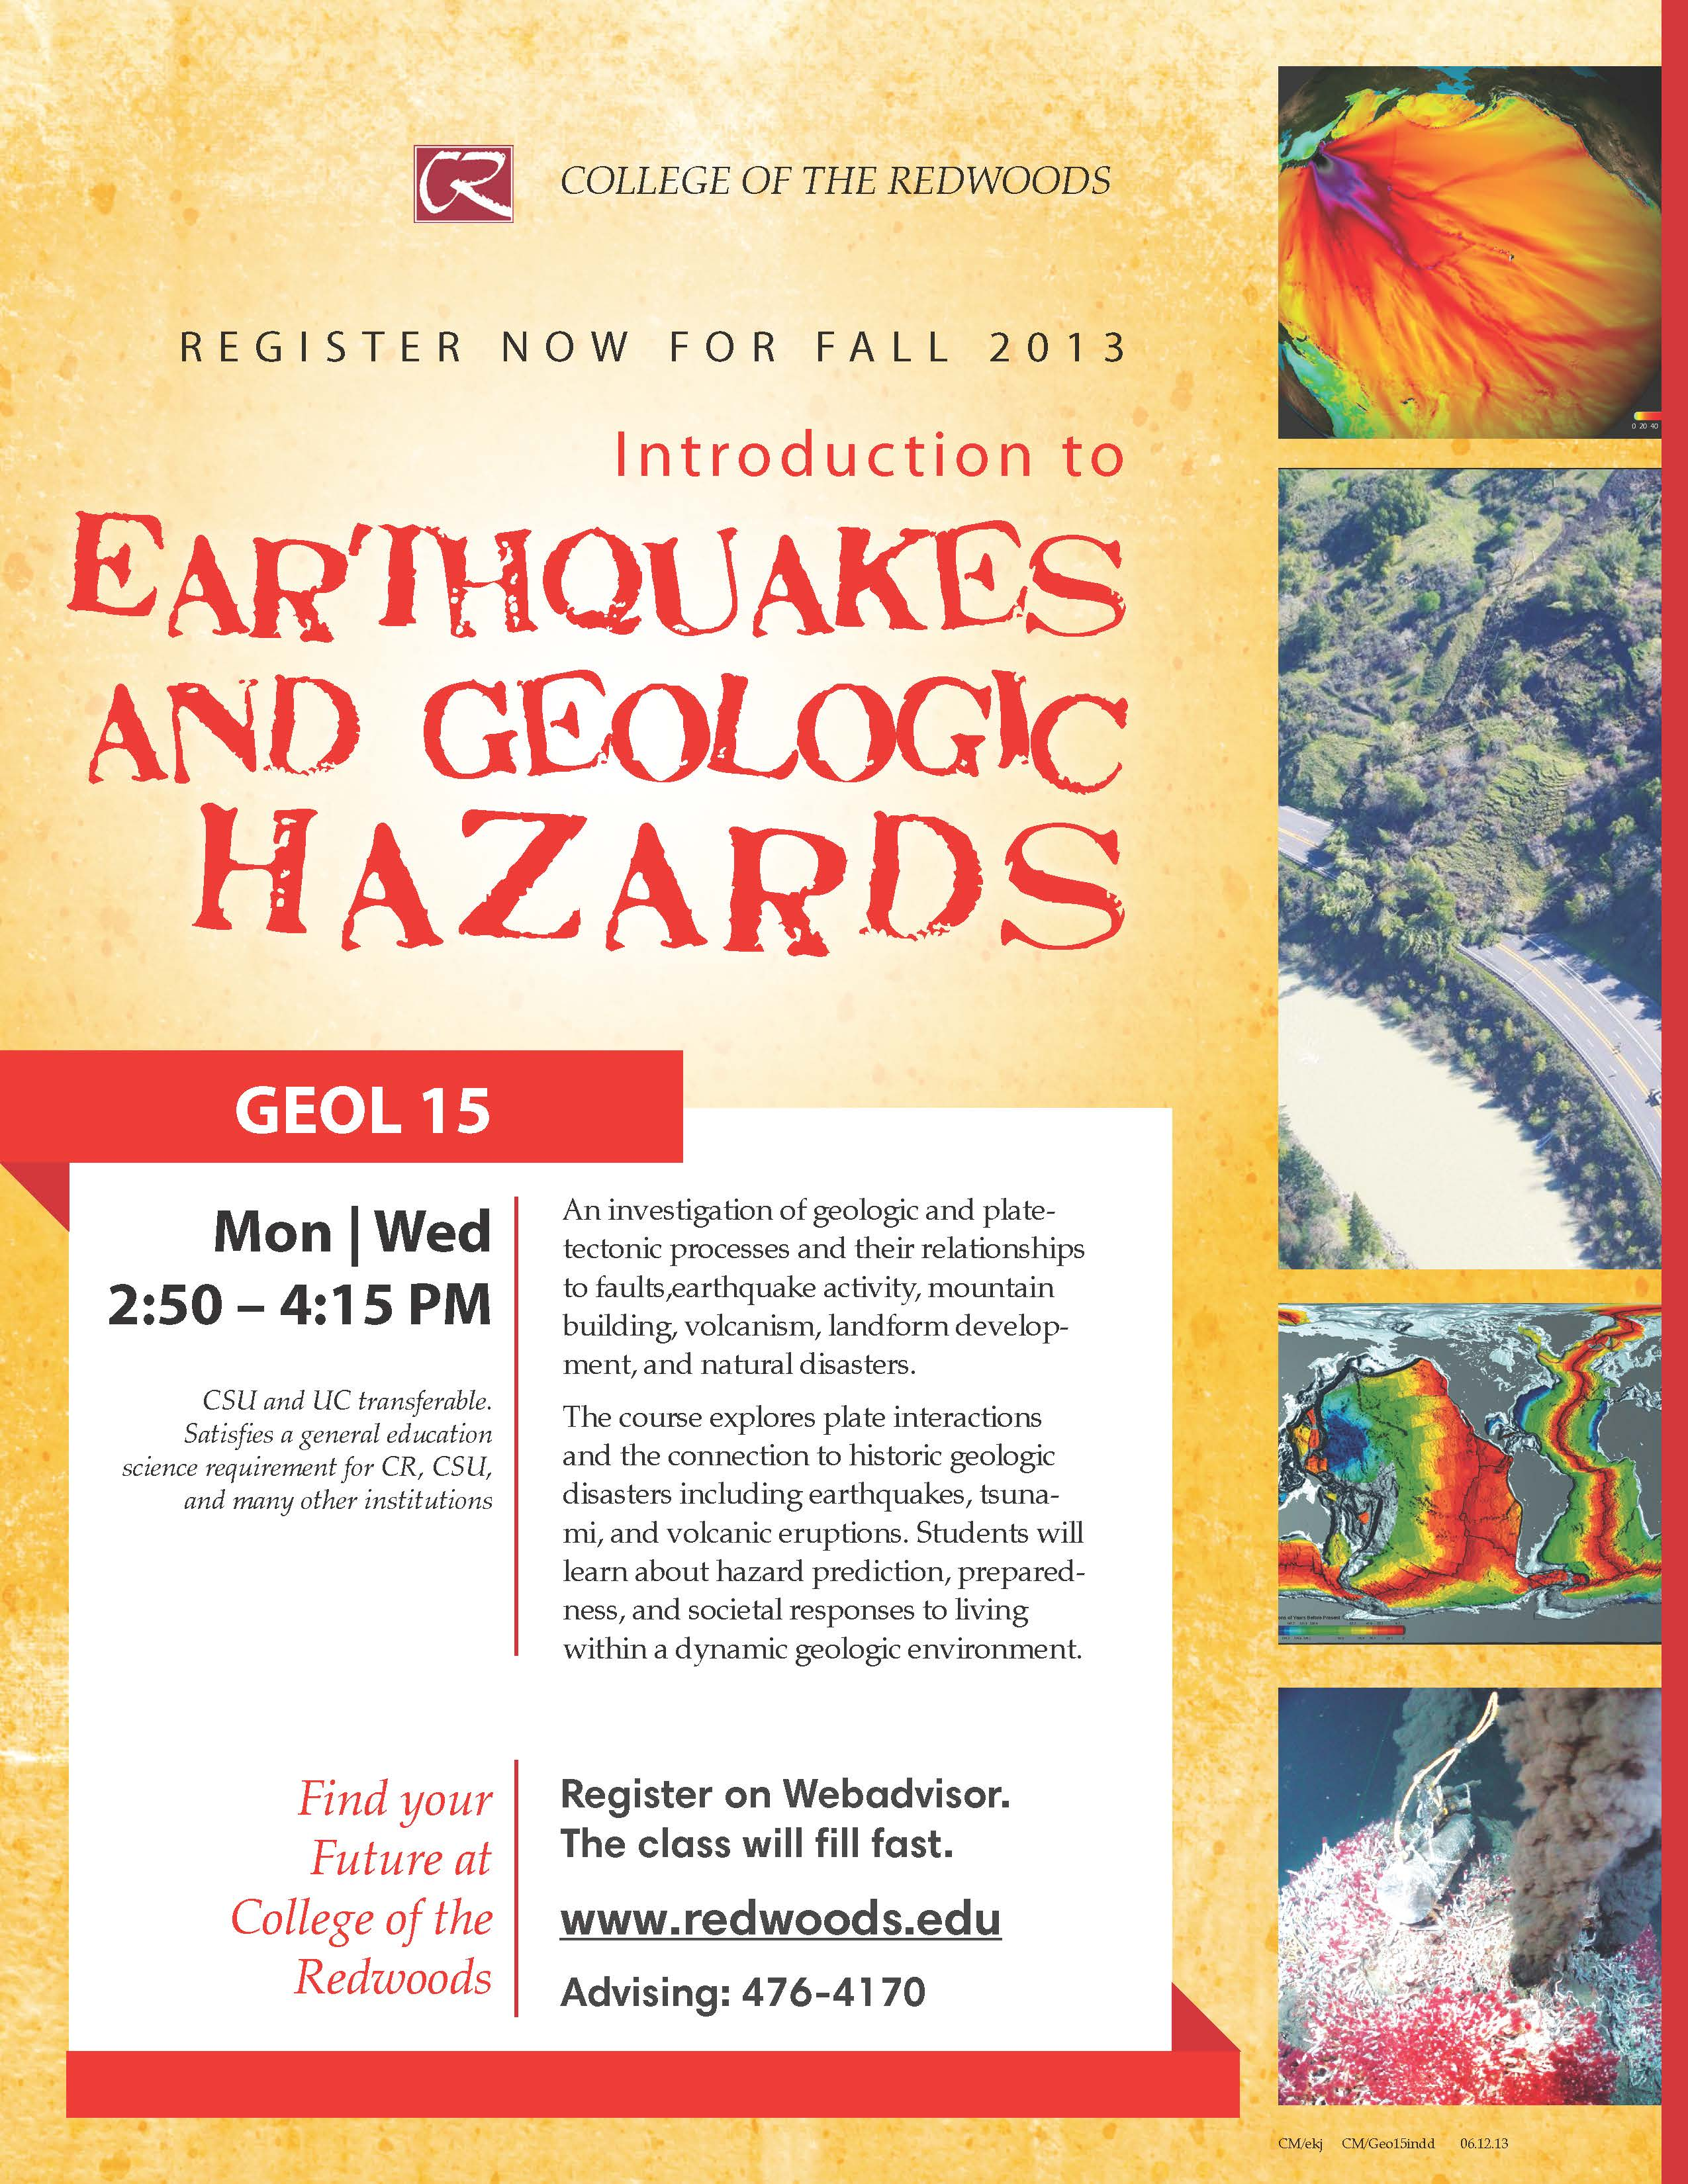 Geol 15 poster